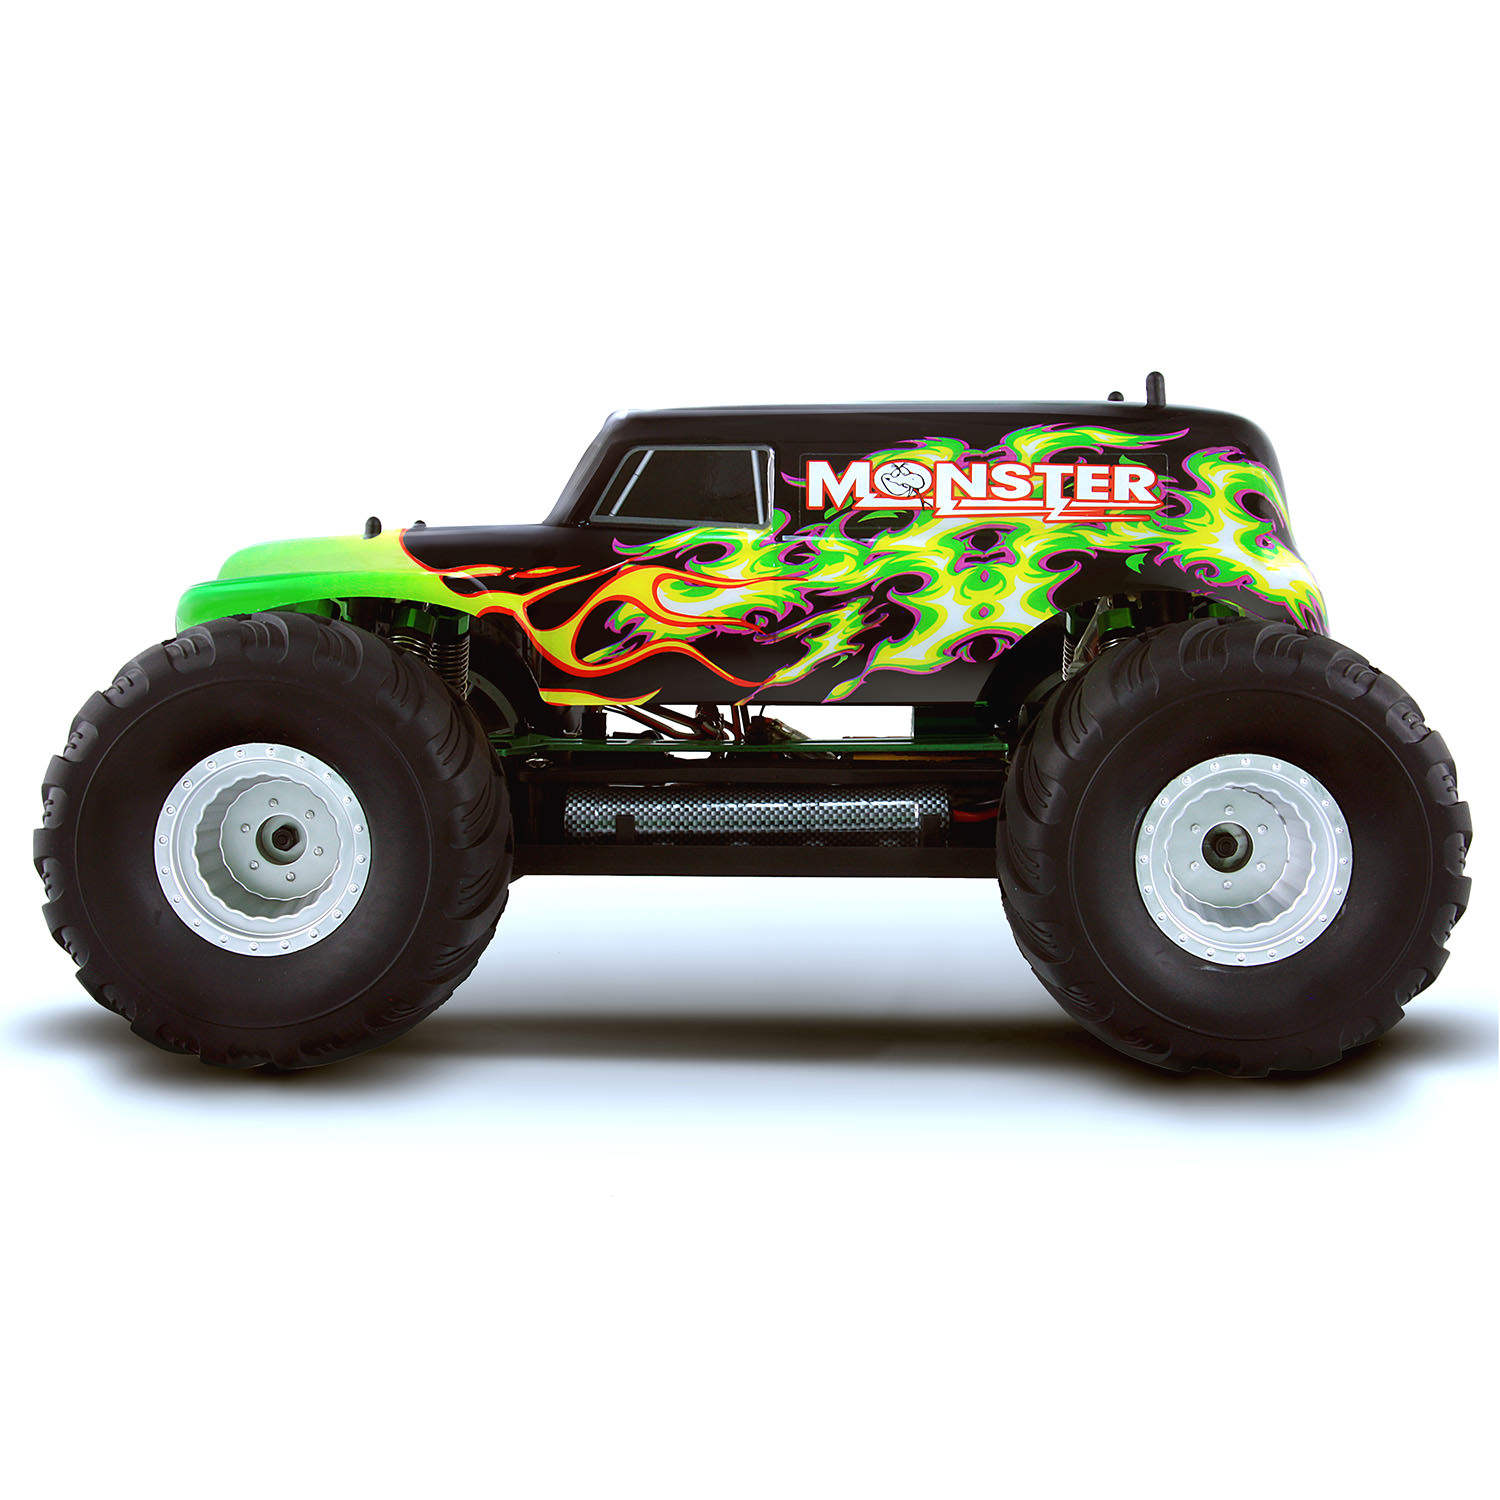 nitro rc cars rtr with Hsp Monster Truck Special Edition 94111 Rc Truck on 394965 furthermore Rh63 also Hsp Monster Truck Special Edition 94111 Rc Truck as well ExtremeMachinesChevroletCamaro27MHz118RTRElectricRCPoliceCar likewise Leistungssteigerung Audi 3 0 Tfsi.